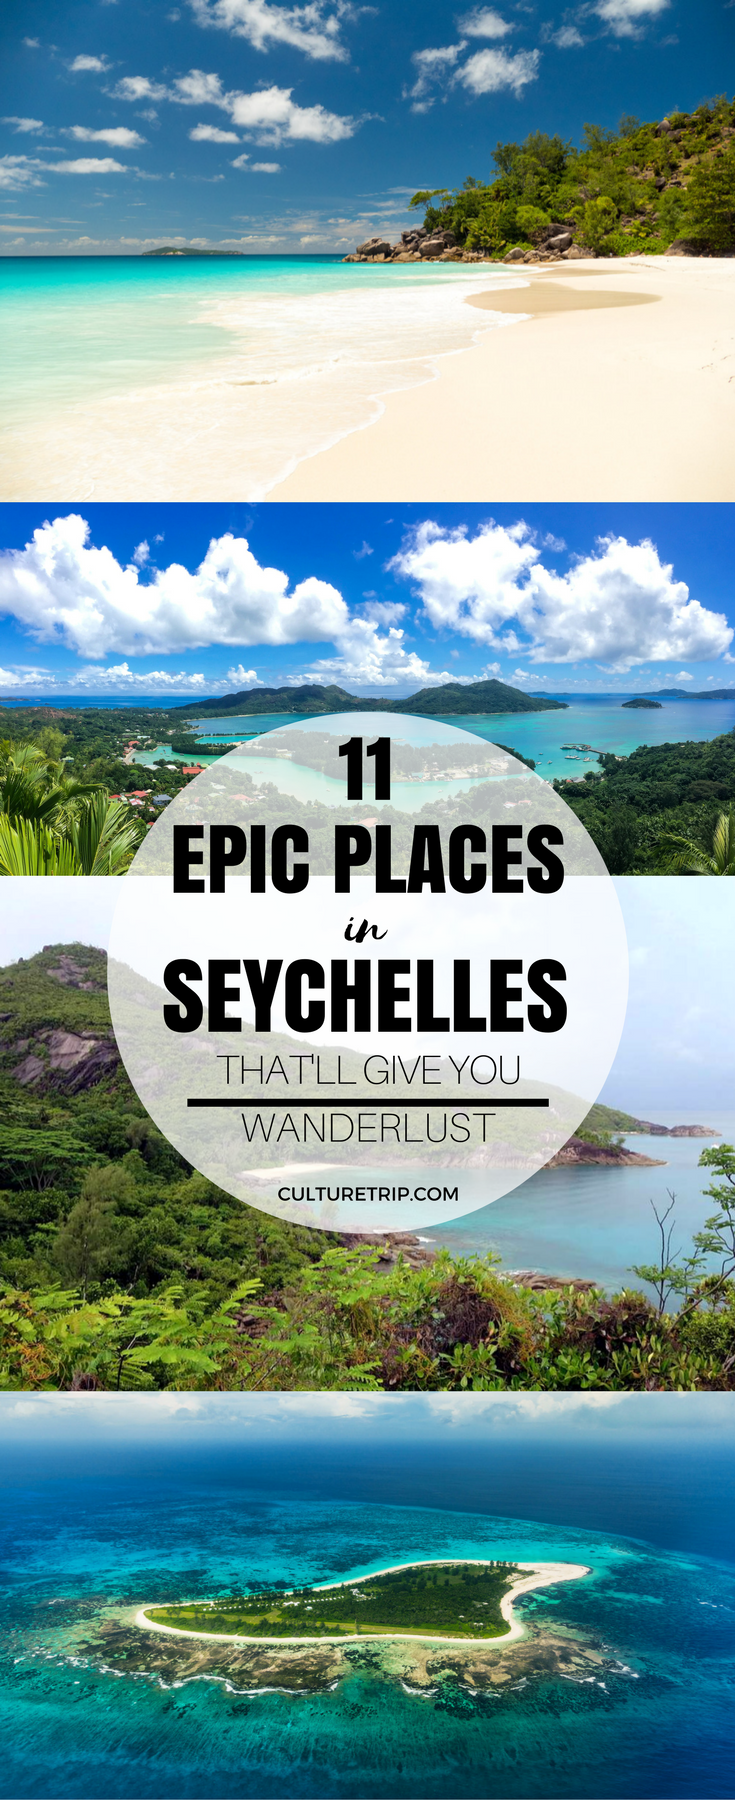 11 Epic Places In Seychelles That Ll Give You Wanderlust Travel Inspiration Wanderlust Africa Destinations Trip